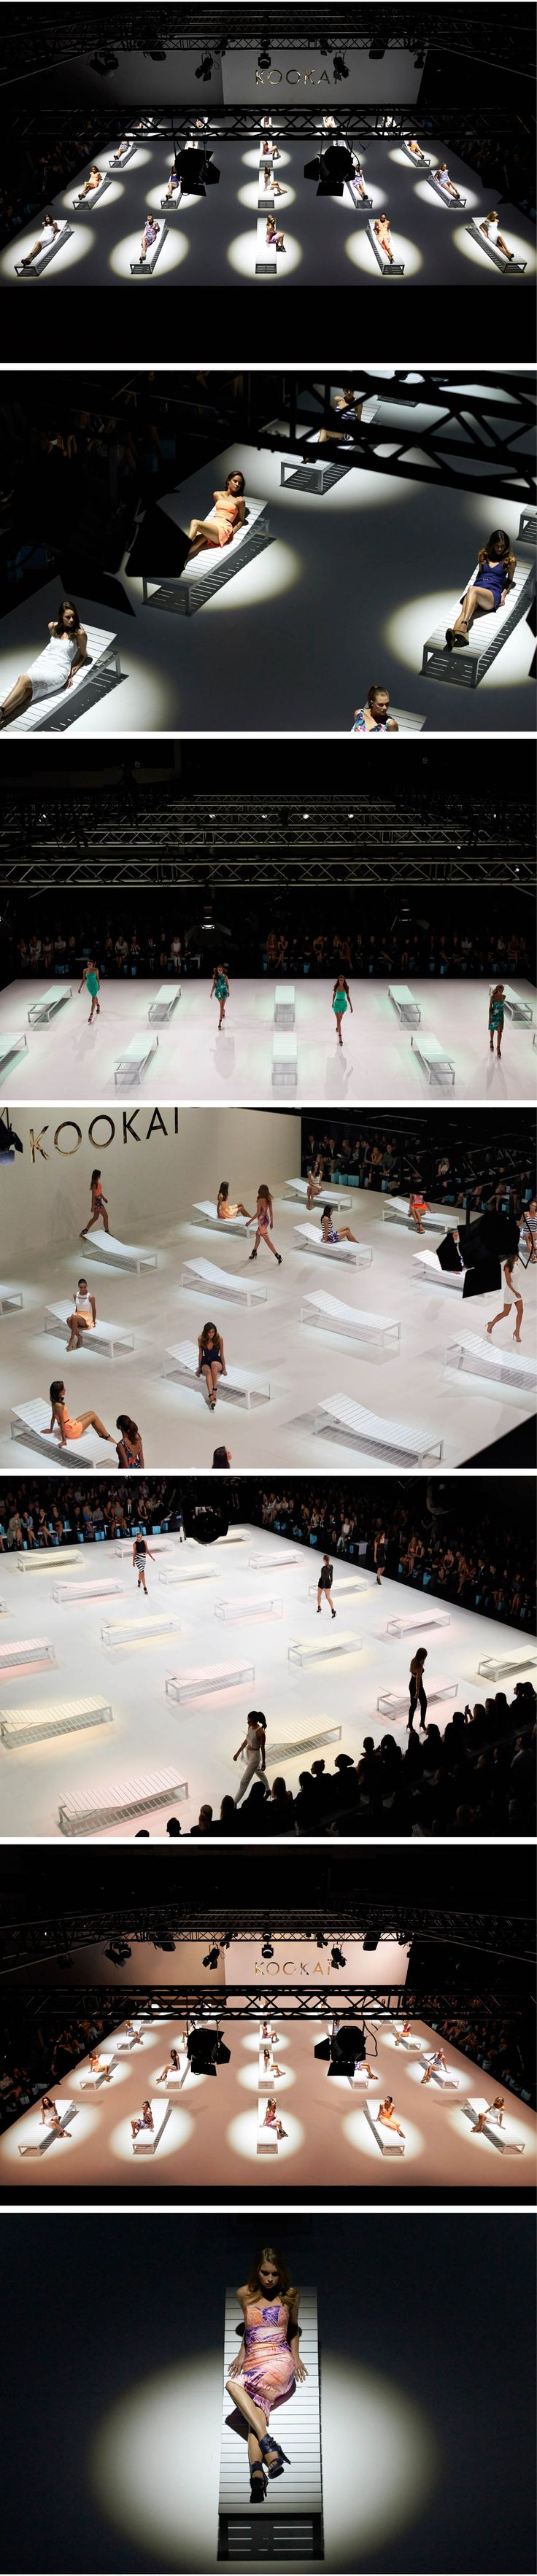 This photo set from the Kookai Fashion Show (taken during London Fashion Week) is a particularly good example of location photography as the staging and lighting is not in control of the photographer. It also shows the difficulty that location photography presents as the various models that are onstage get up and move across the stage, meaning that the photographer would have to use a higher shutter speed in order to capture the movements without making the models blurred.